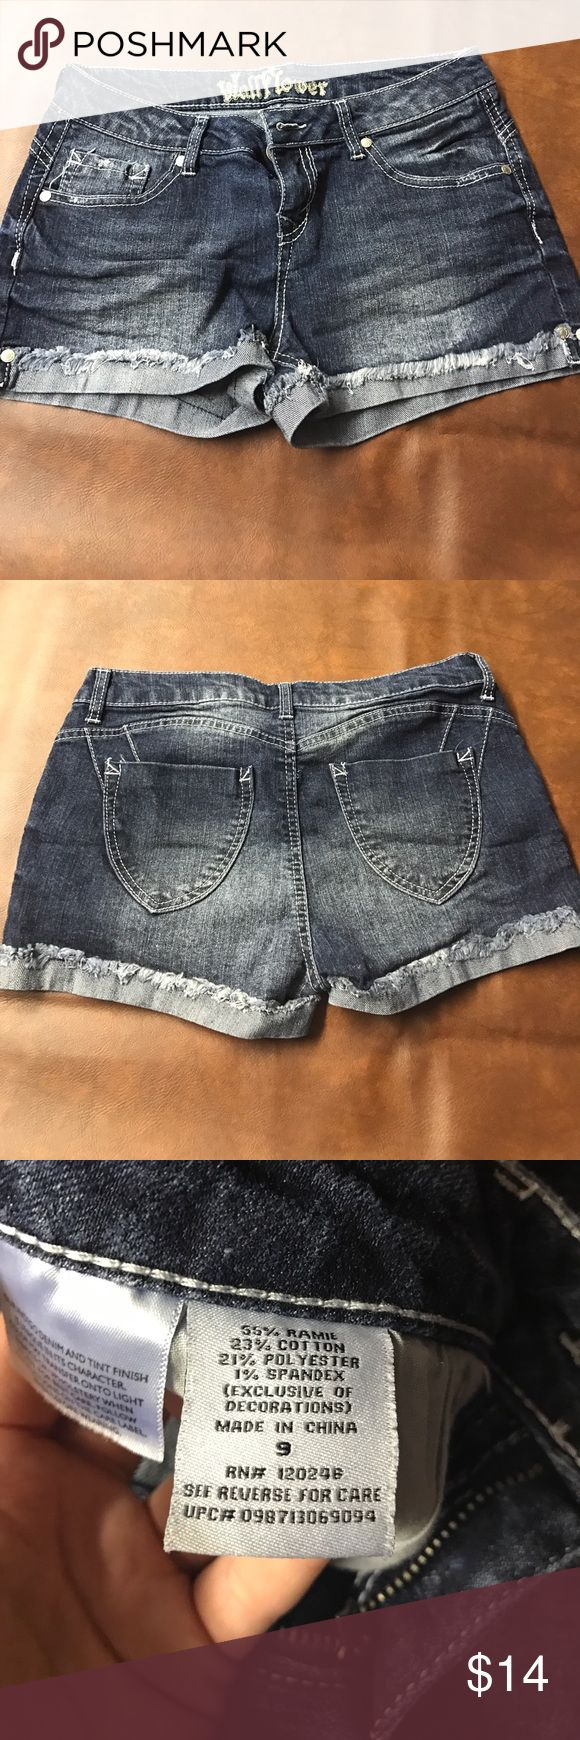 Size 9 jean shorts Wallflower jean shorts. Size 9. Worn maybe once or twice. Look brand new. Wallflower Shorts Jean Shorts